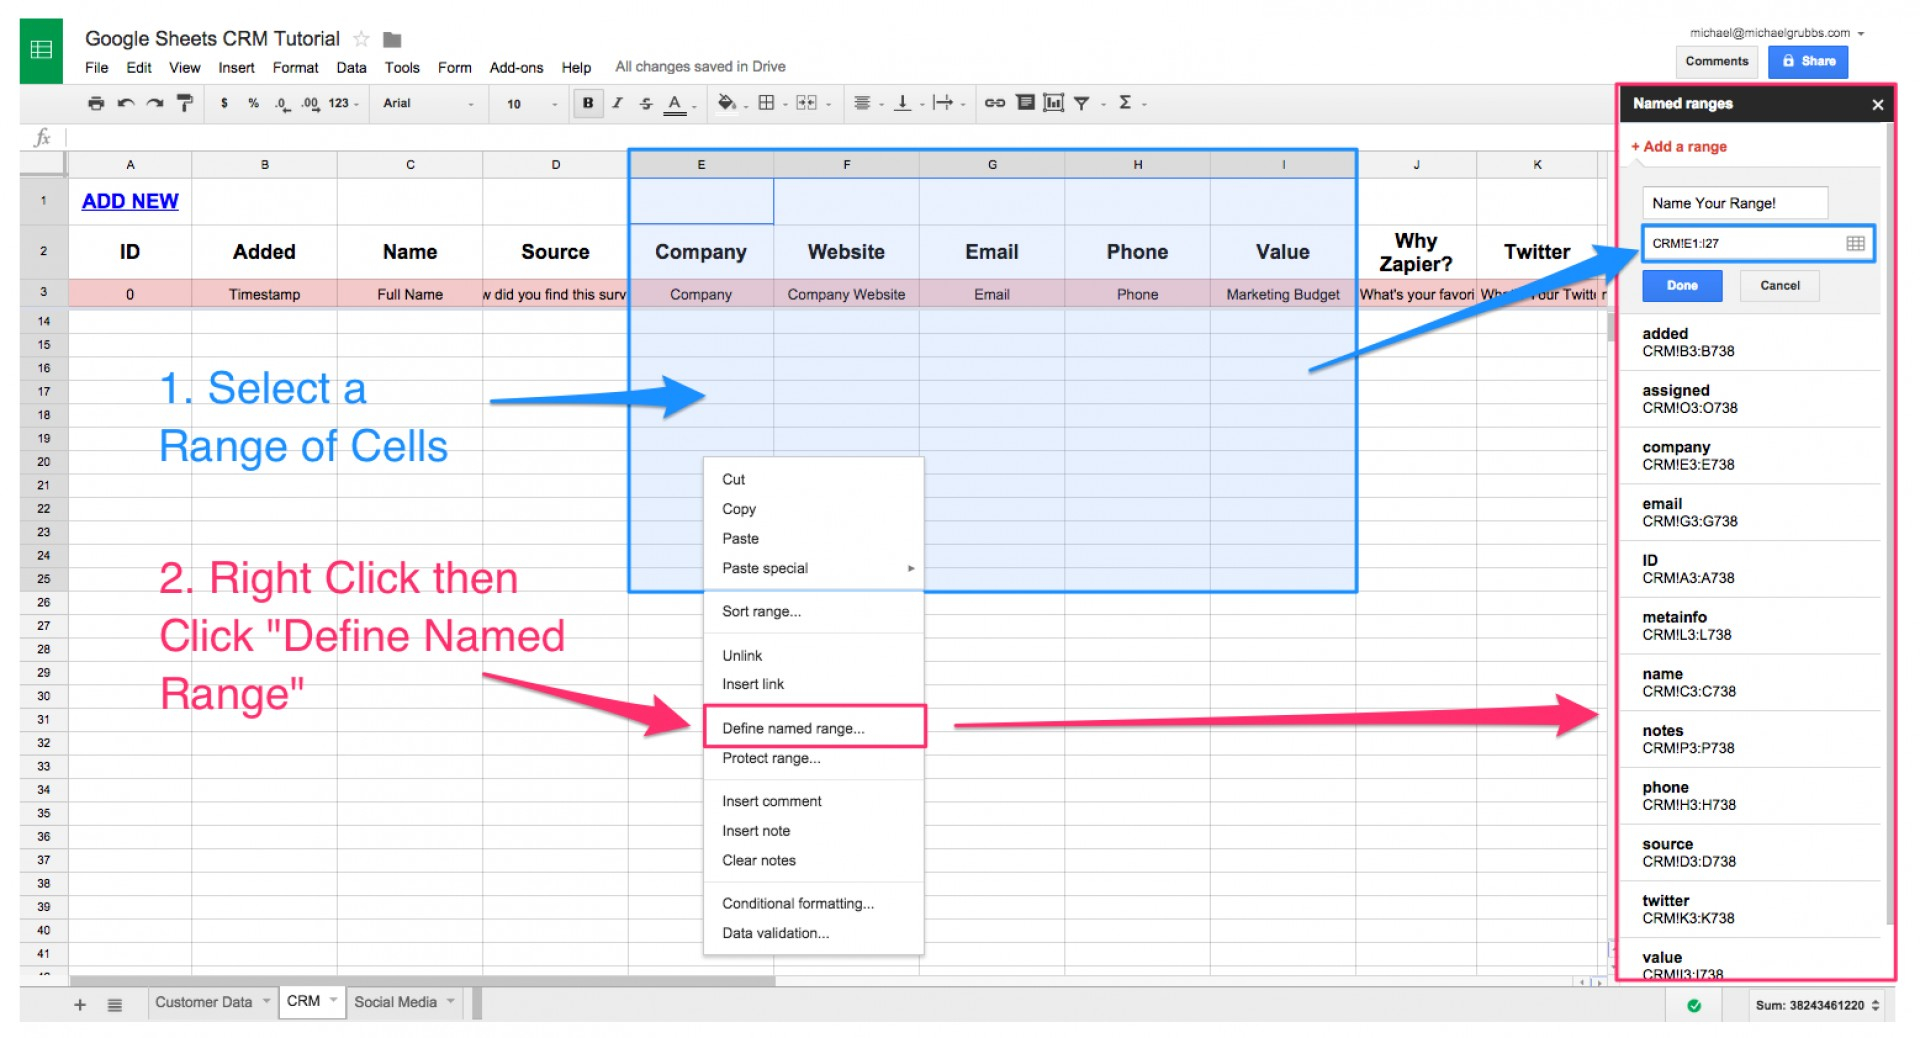 How To Create An Inventory Spreadsheet On Google Docs Pertaining To 006 Template Ideas Inventory Google Sheets Spreadsheet Crm How To